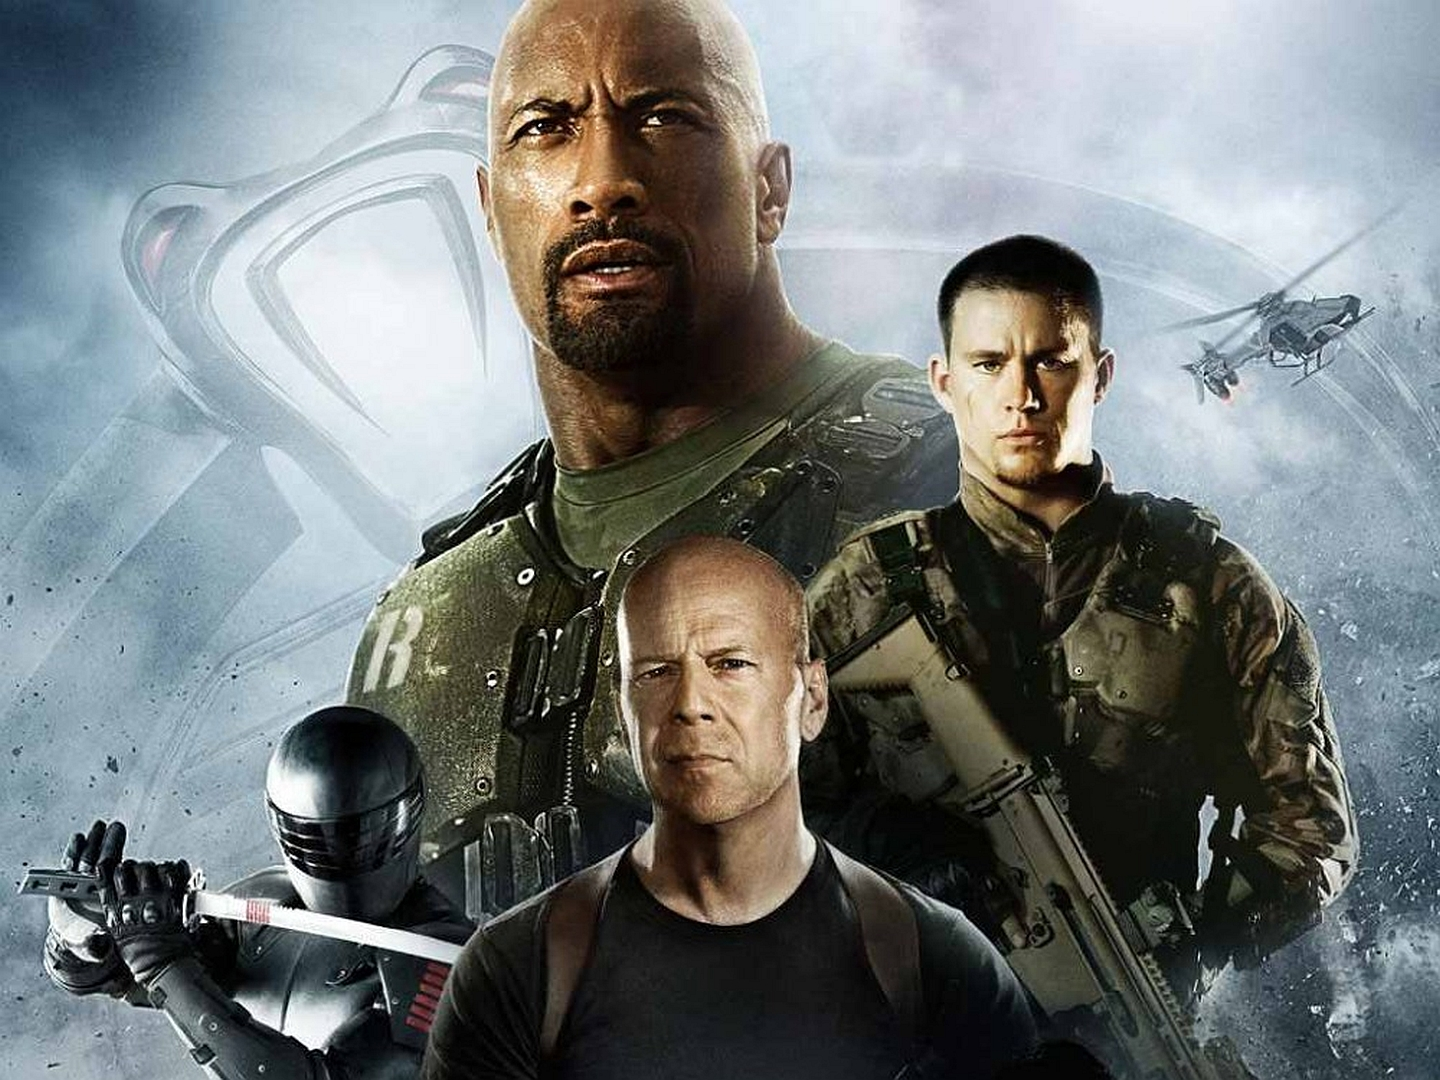 37 G I Joe: Retaliation Wallpapers | G I Joe: Retaliation Backgrounds